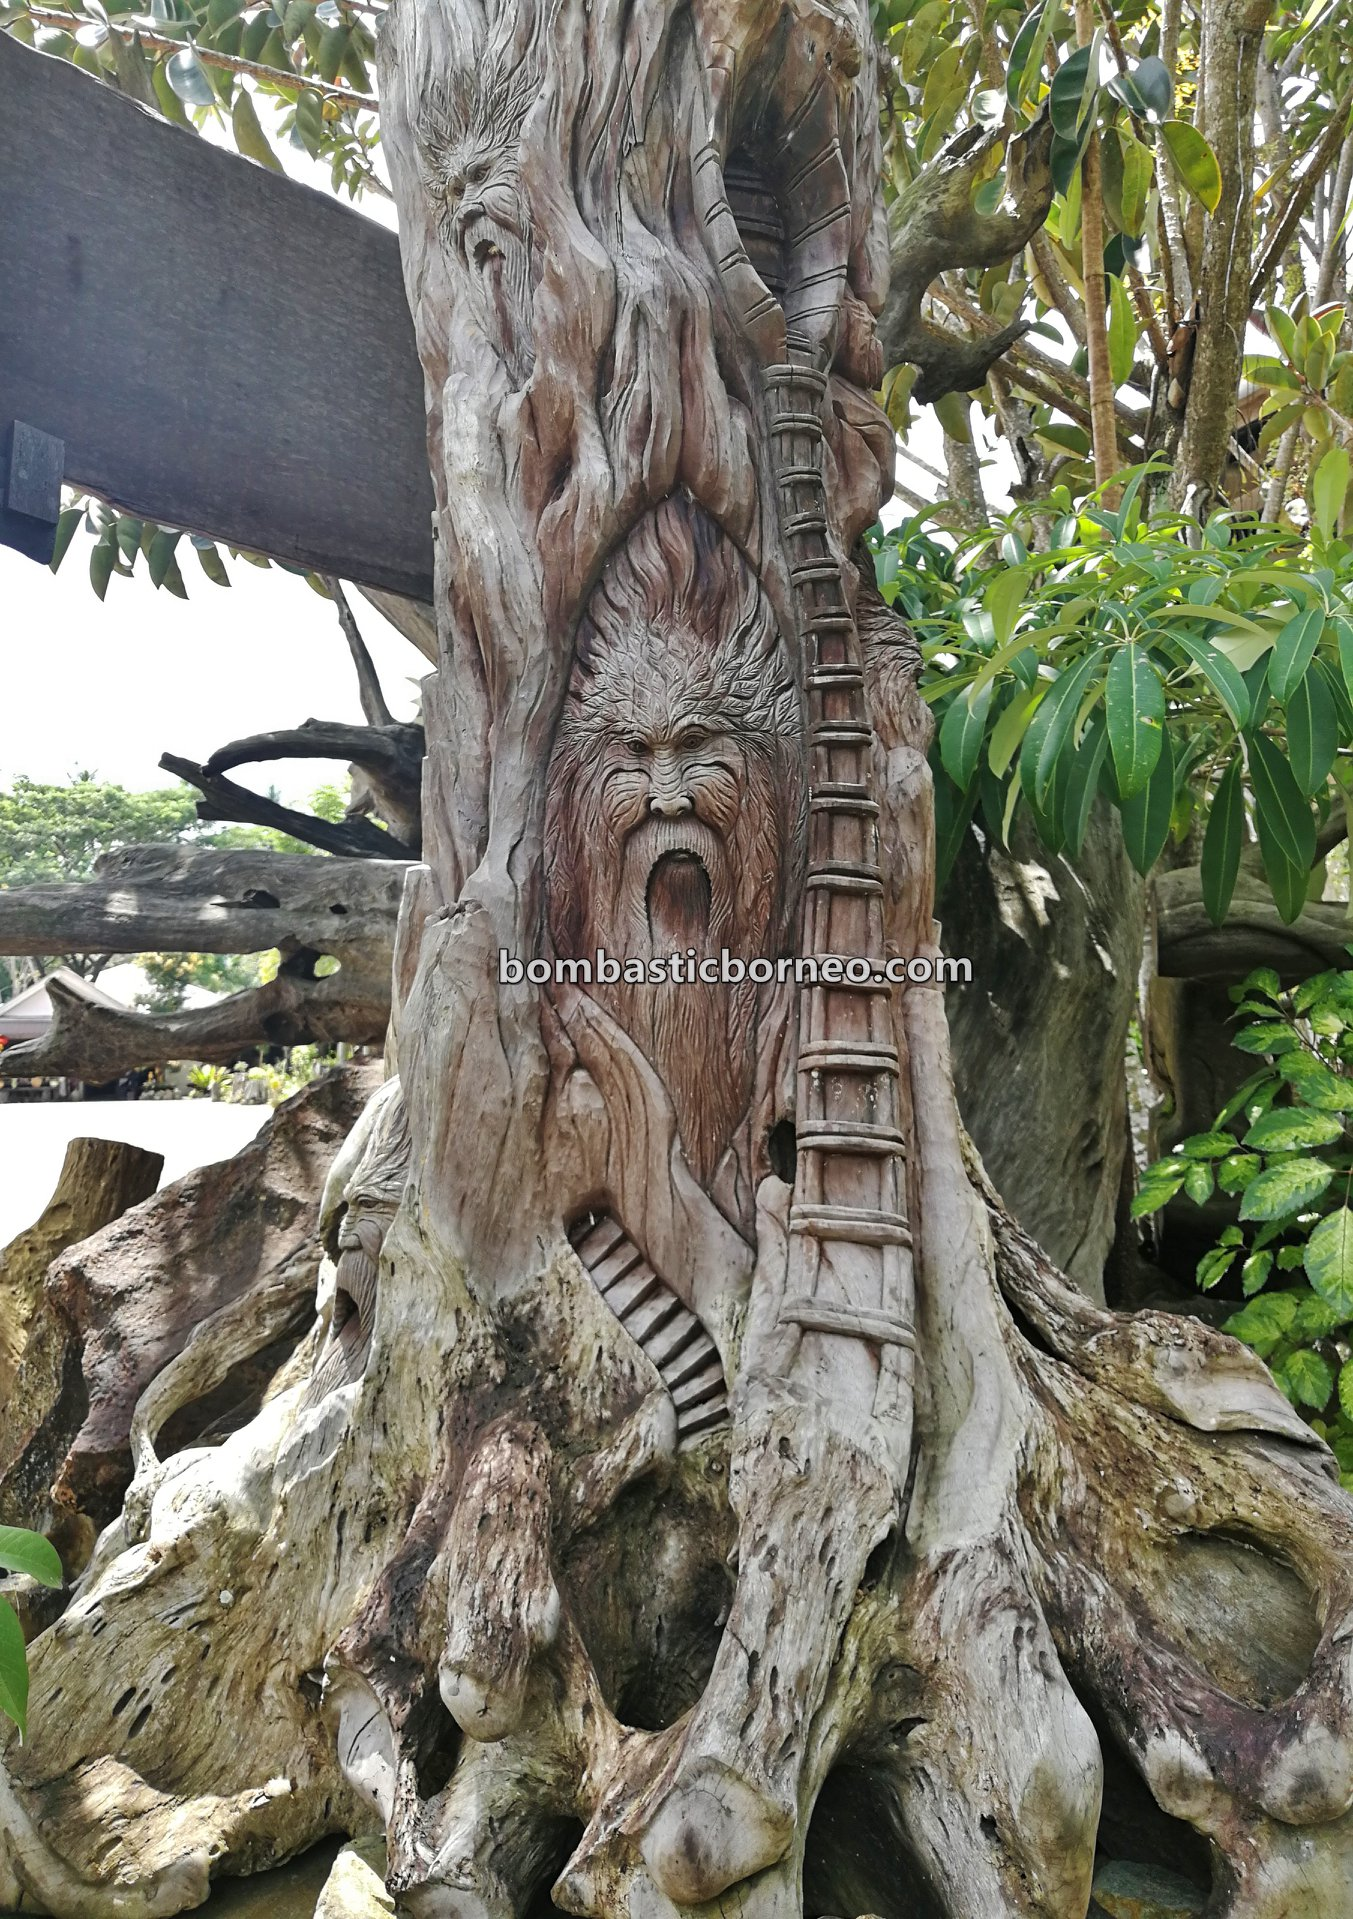 destination, belian wood, iron wood, kayu ulin, Borneo Wood Furniture, gallery, Singkawang, Indonesia, Kalimantan Barat, kerajinan kayu, nature, Obyek wisata, Tourism, travel guide, wood sculptures,